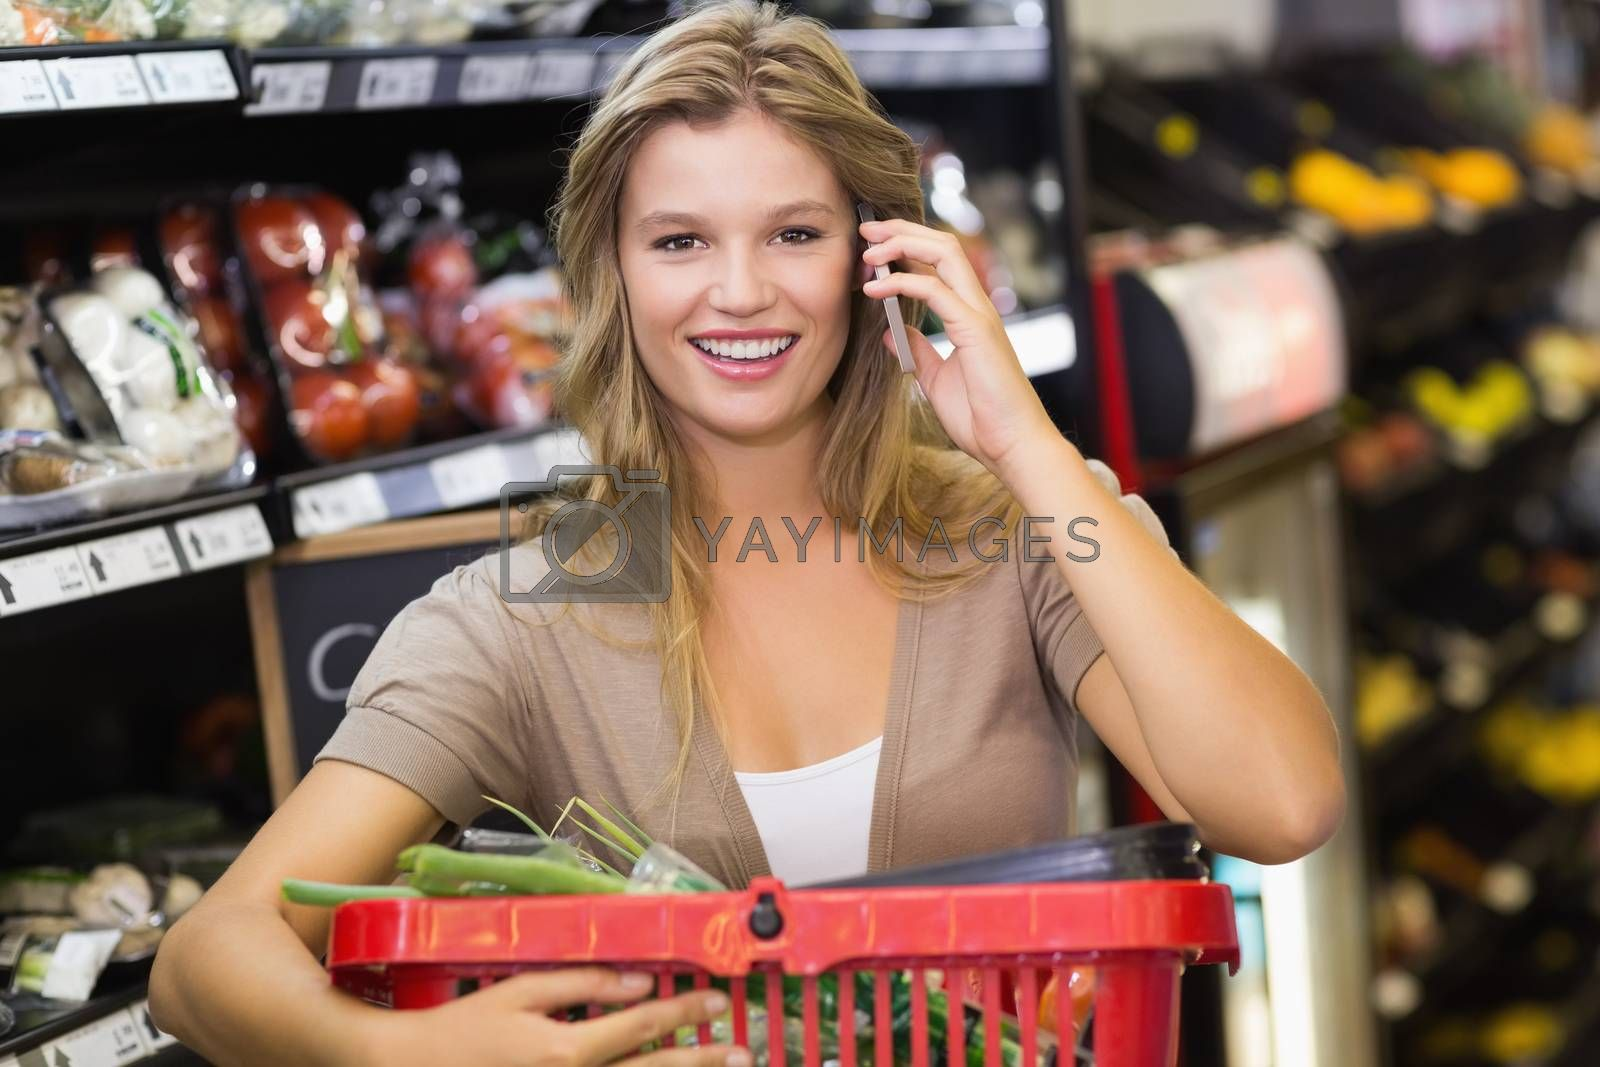 Royalty free image of Portrait of smiling blonde woman buying vegetables and phoning  by Wavebreakmedia